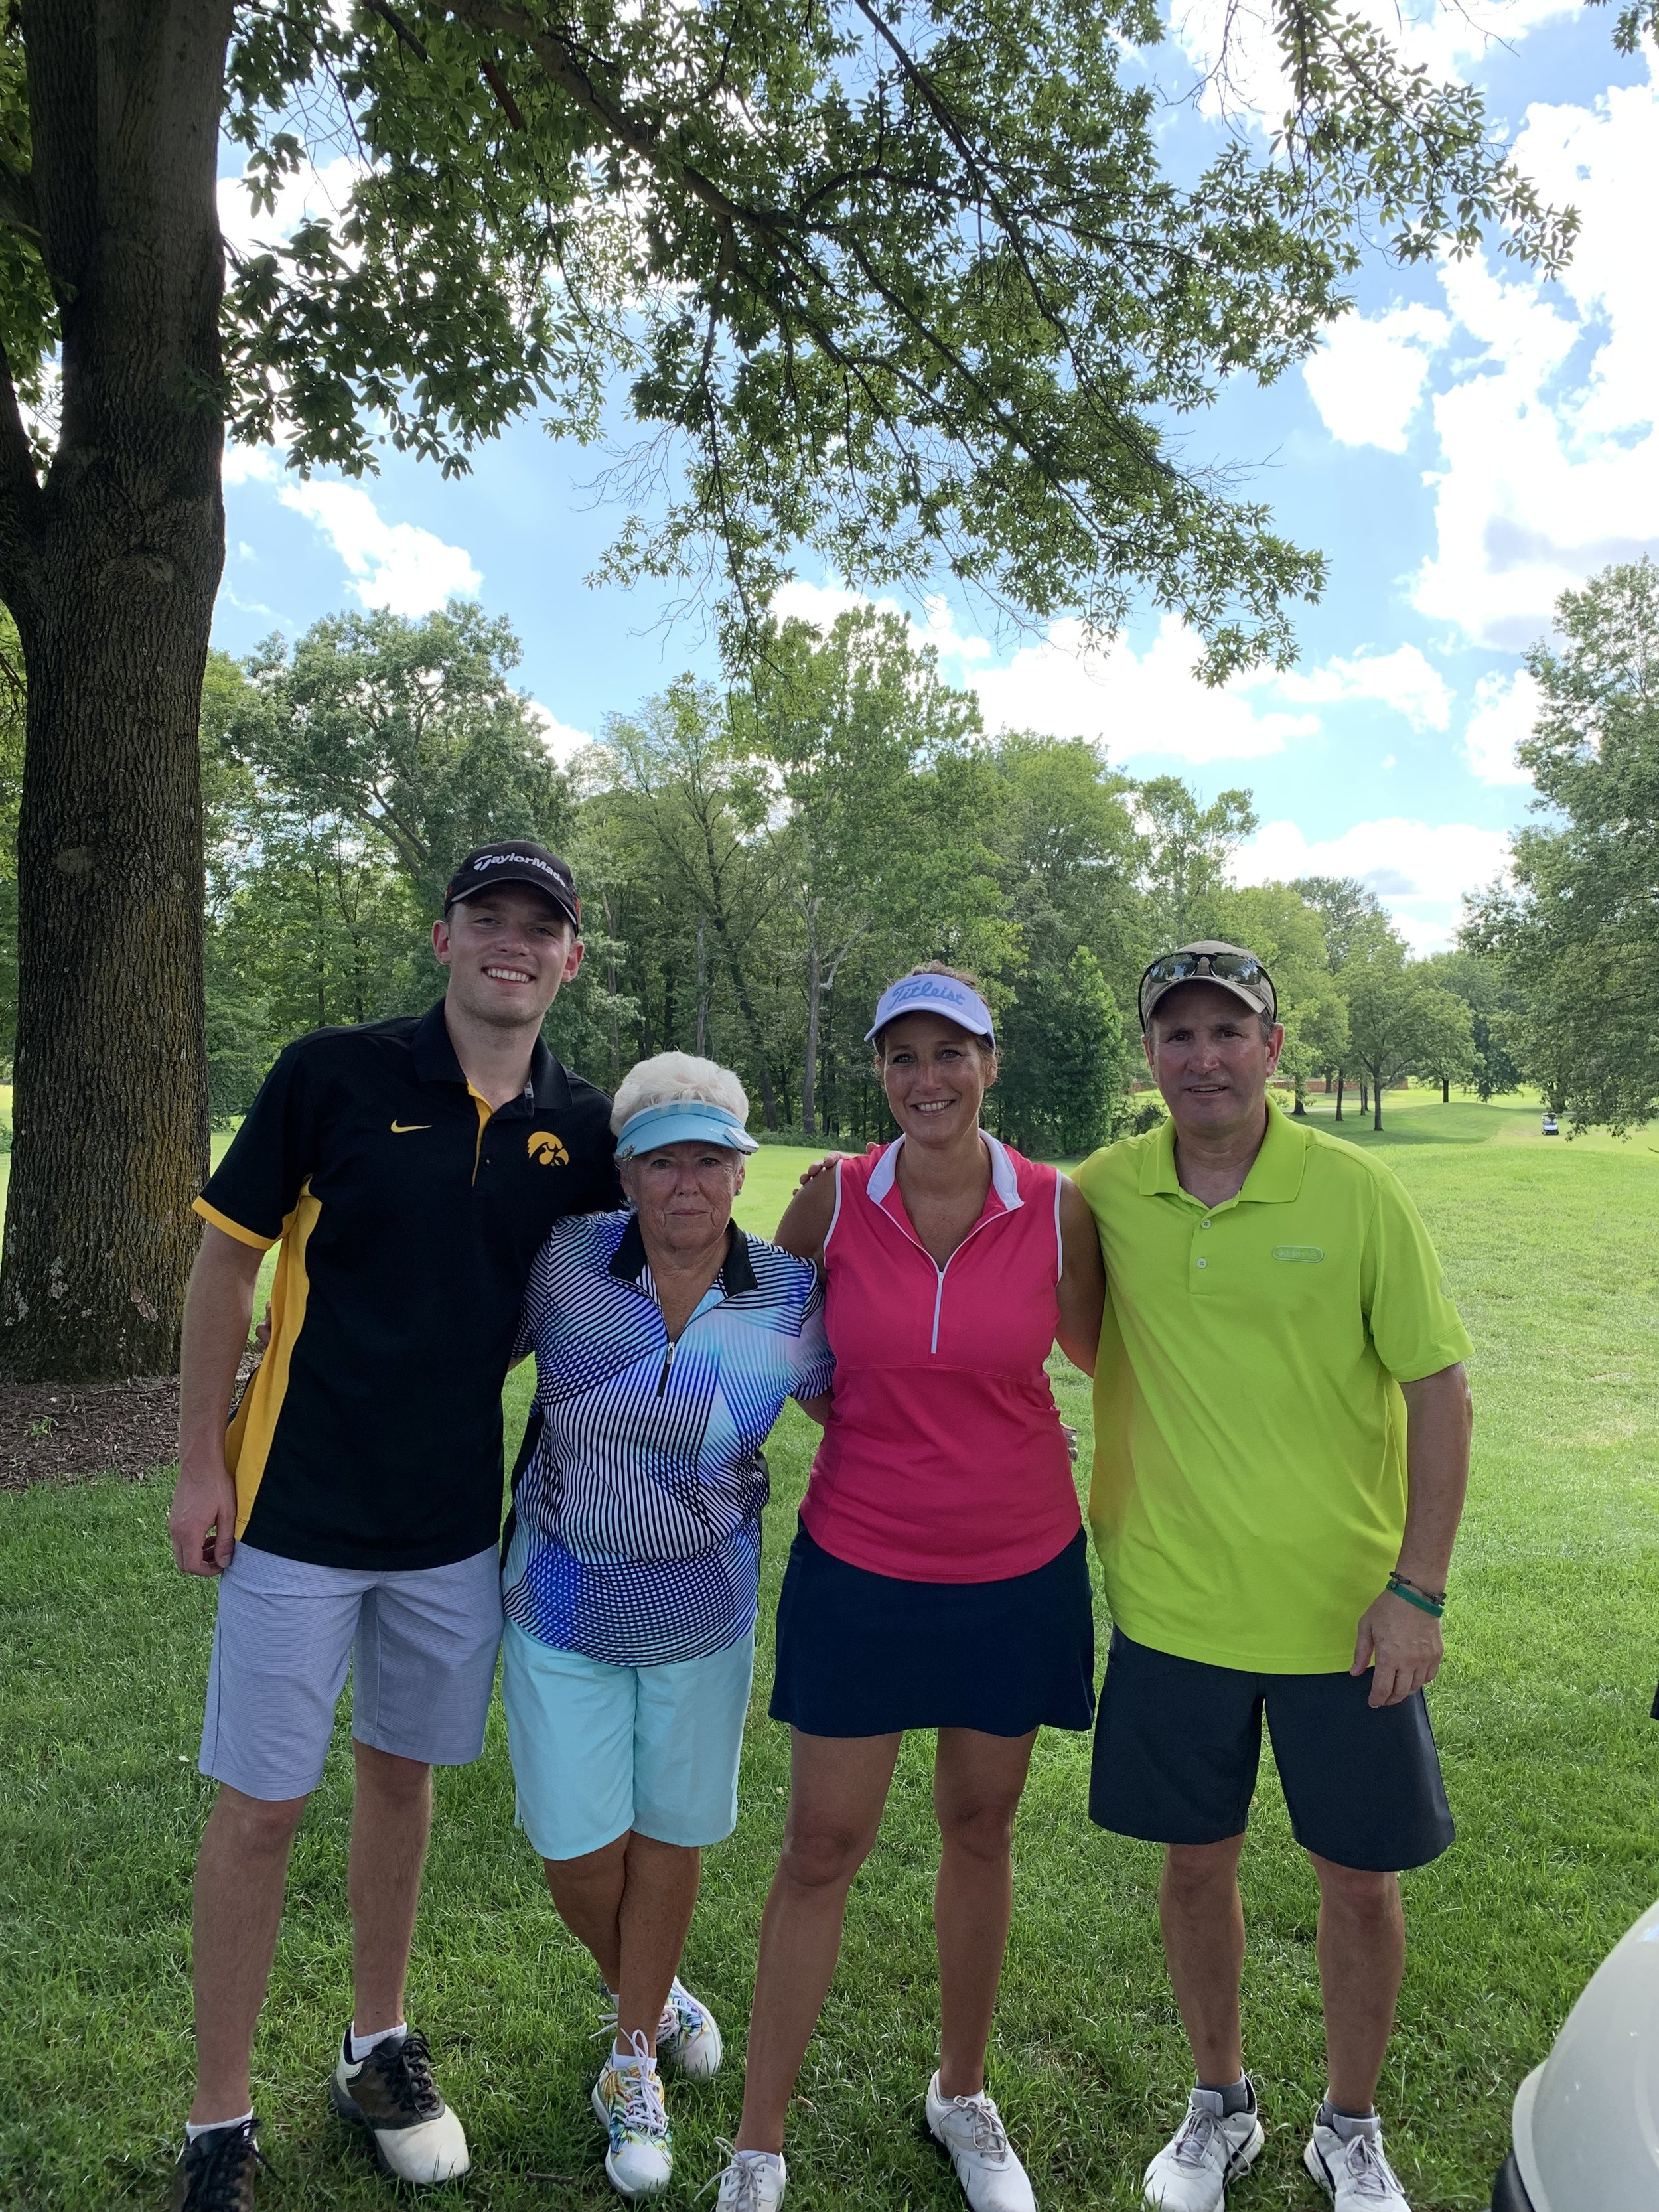 My mom, Barb Weaver, was the oldest participant in the BOB this year. This team looks pretty darn good considering they just finished 18 holes in the 98 degree heat of St. Louis!